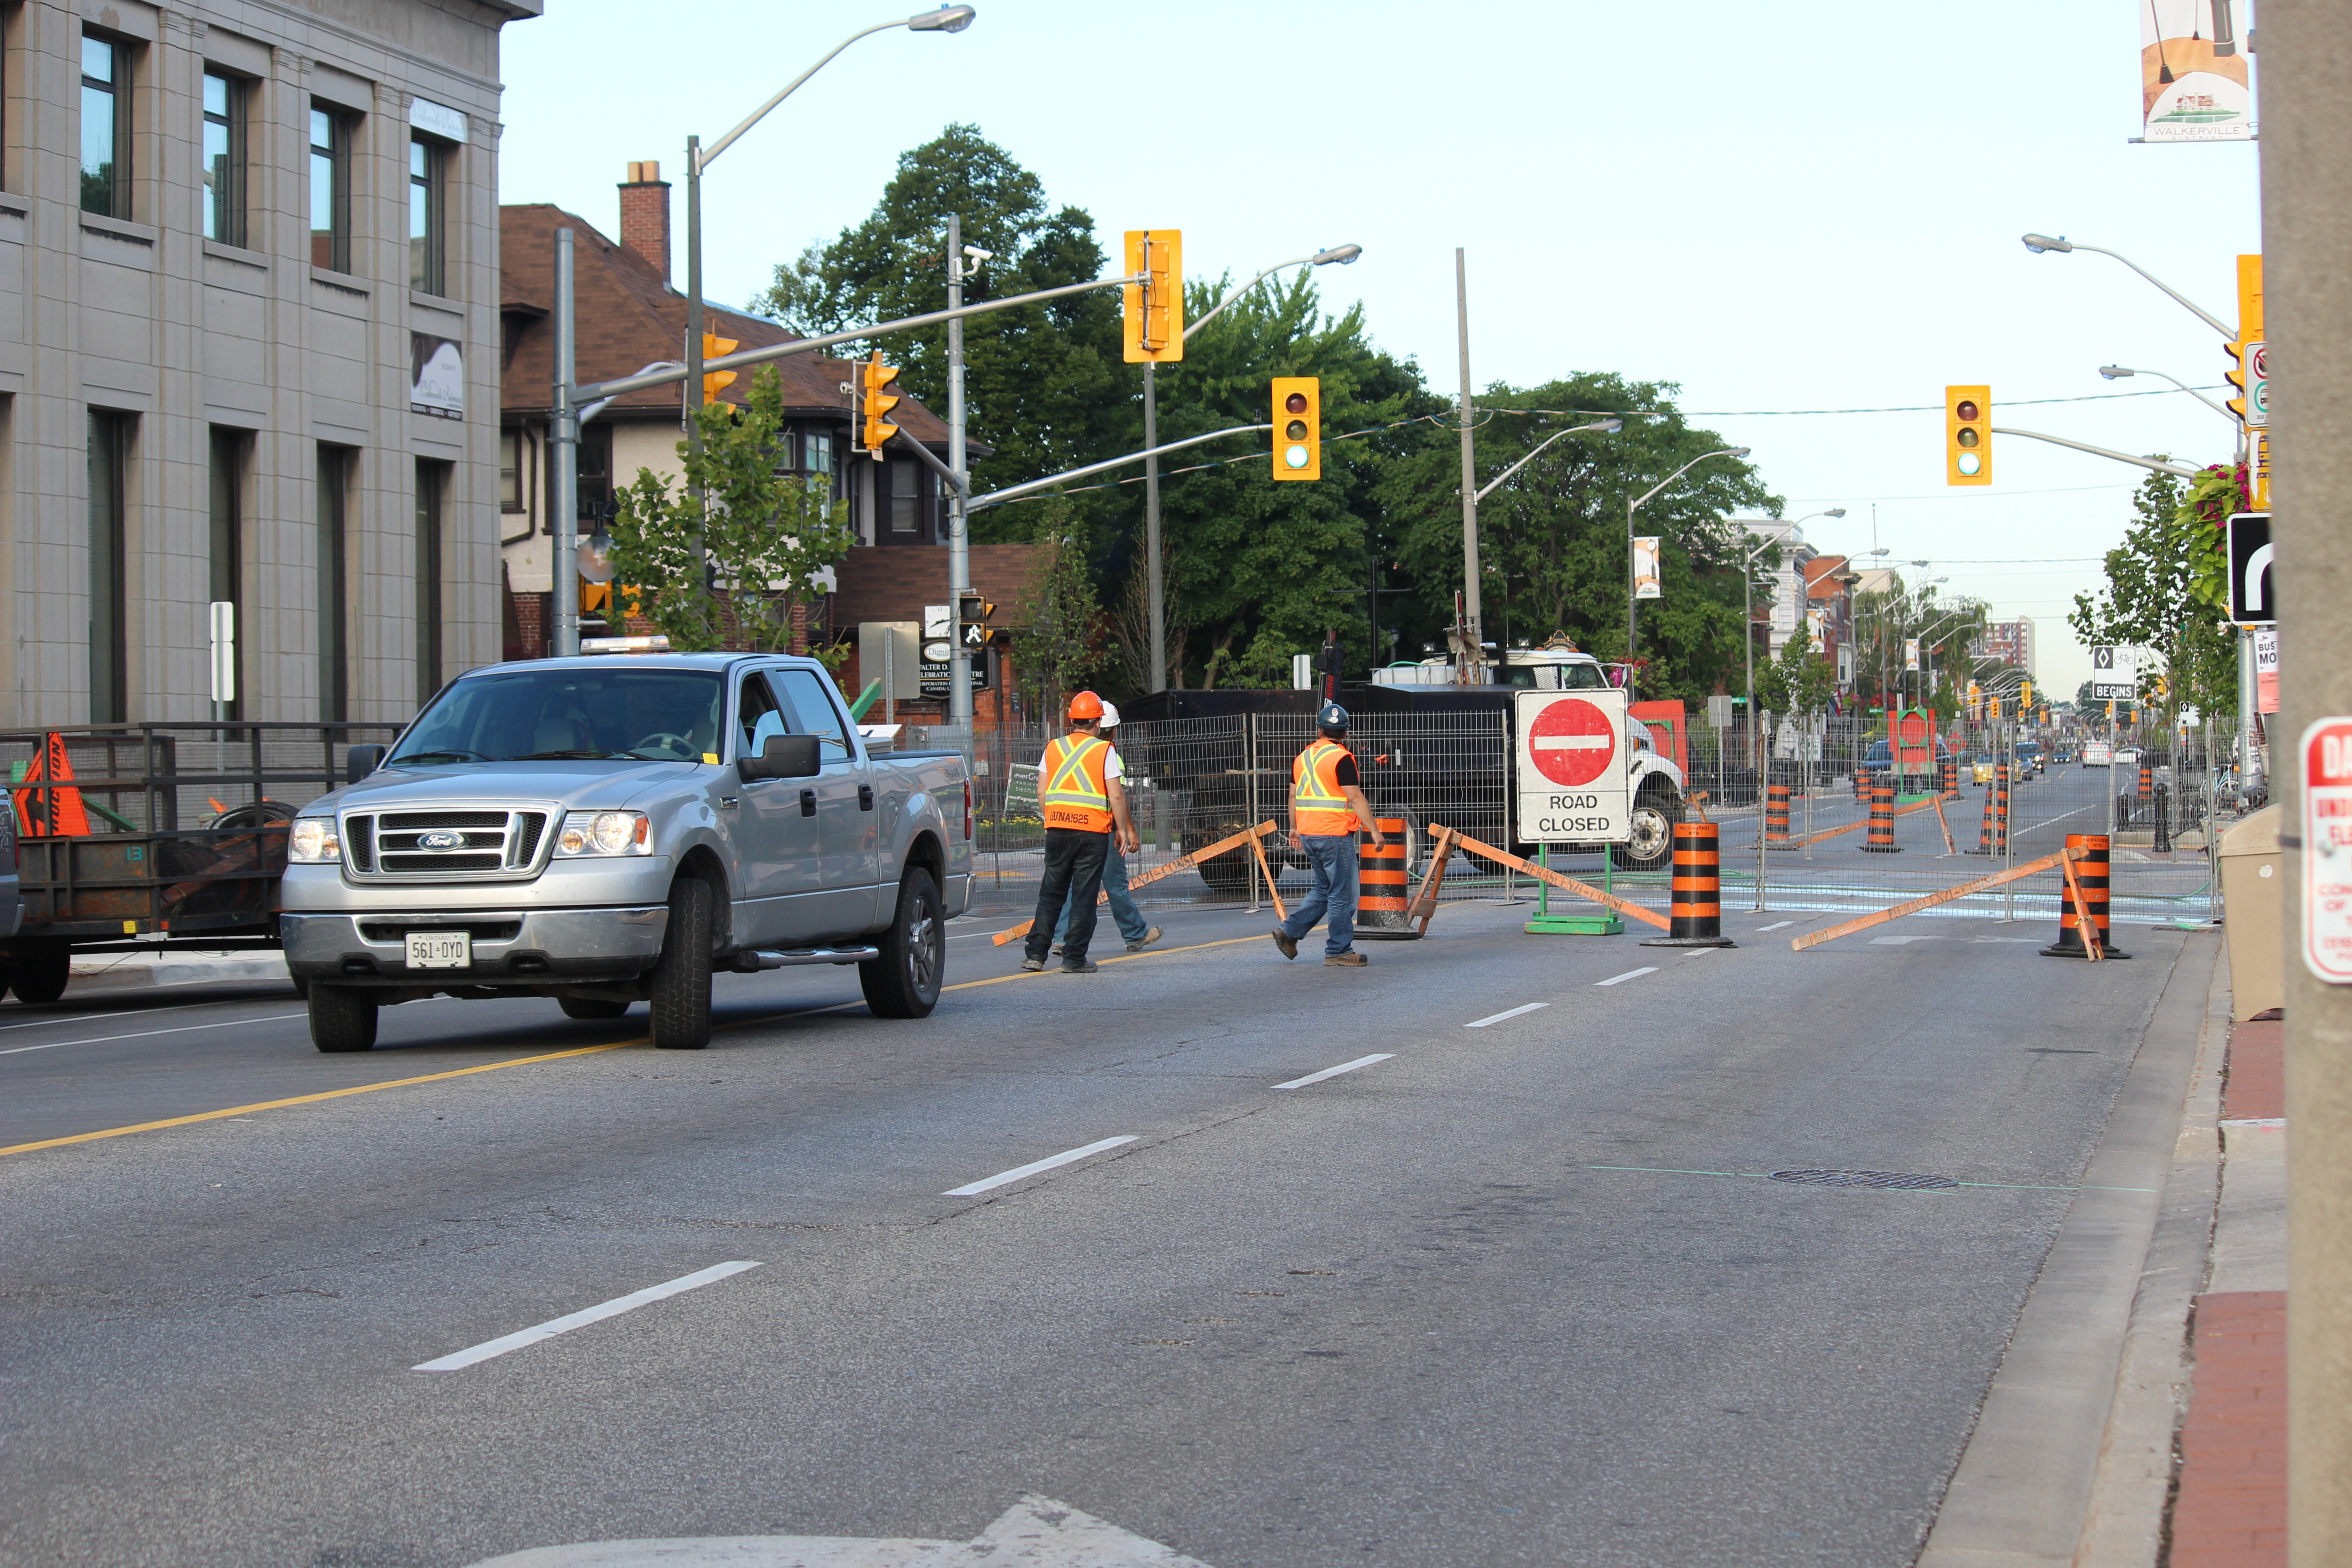 Construction on Wyandotte St. E at Devonshire Rd. in Windsor August 4, 2015. (Photo by Adelle Loiselle)